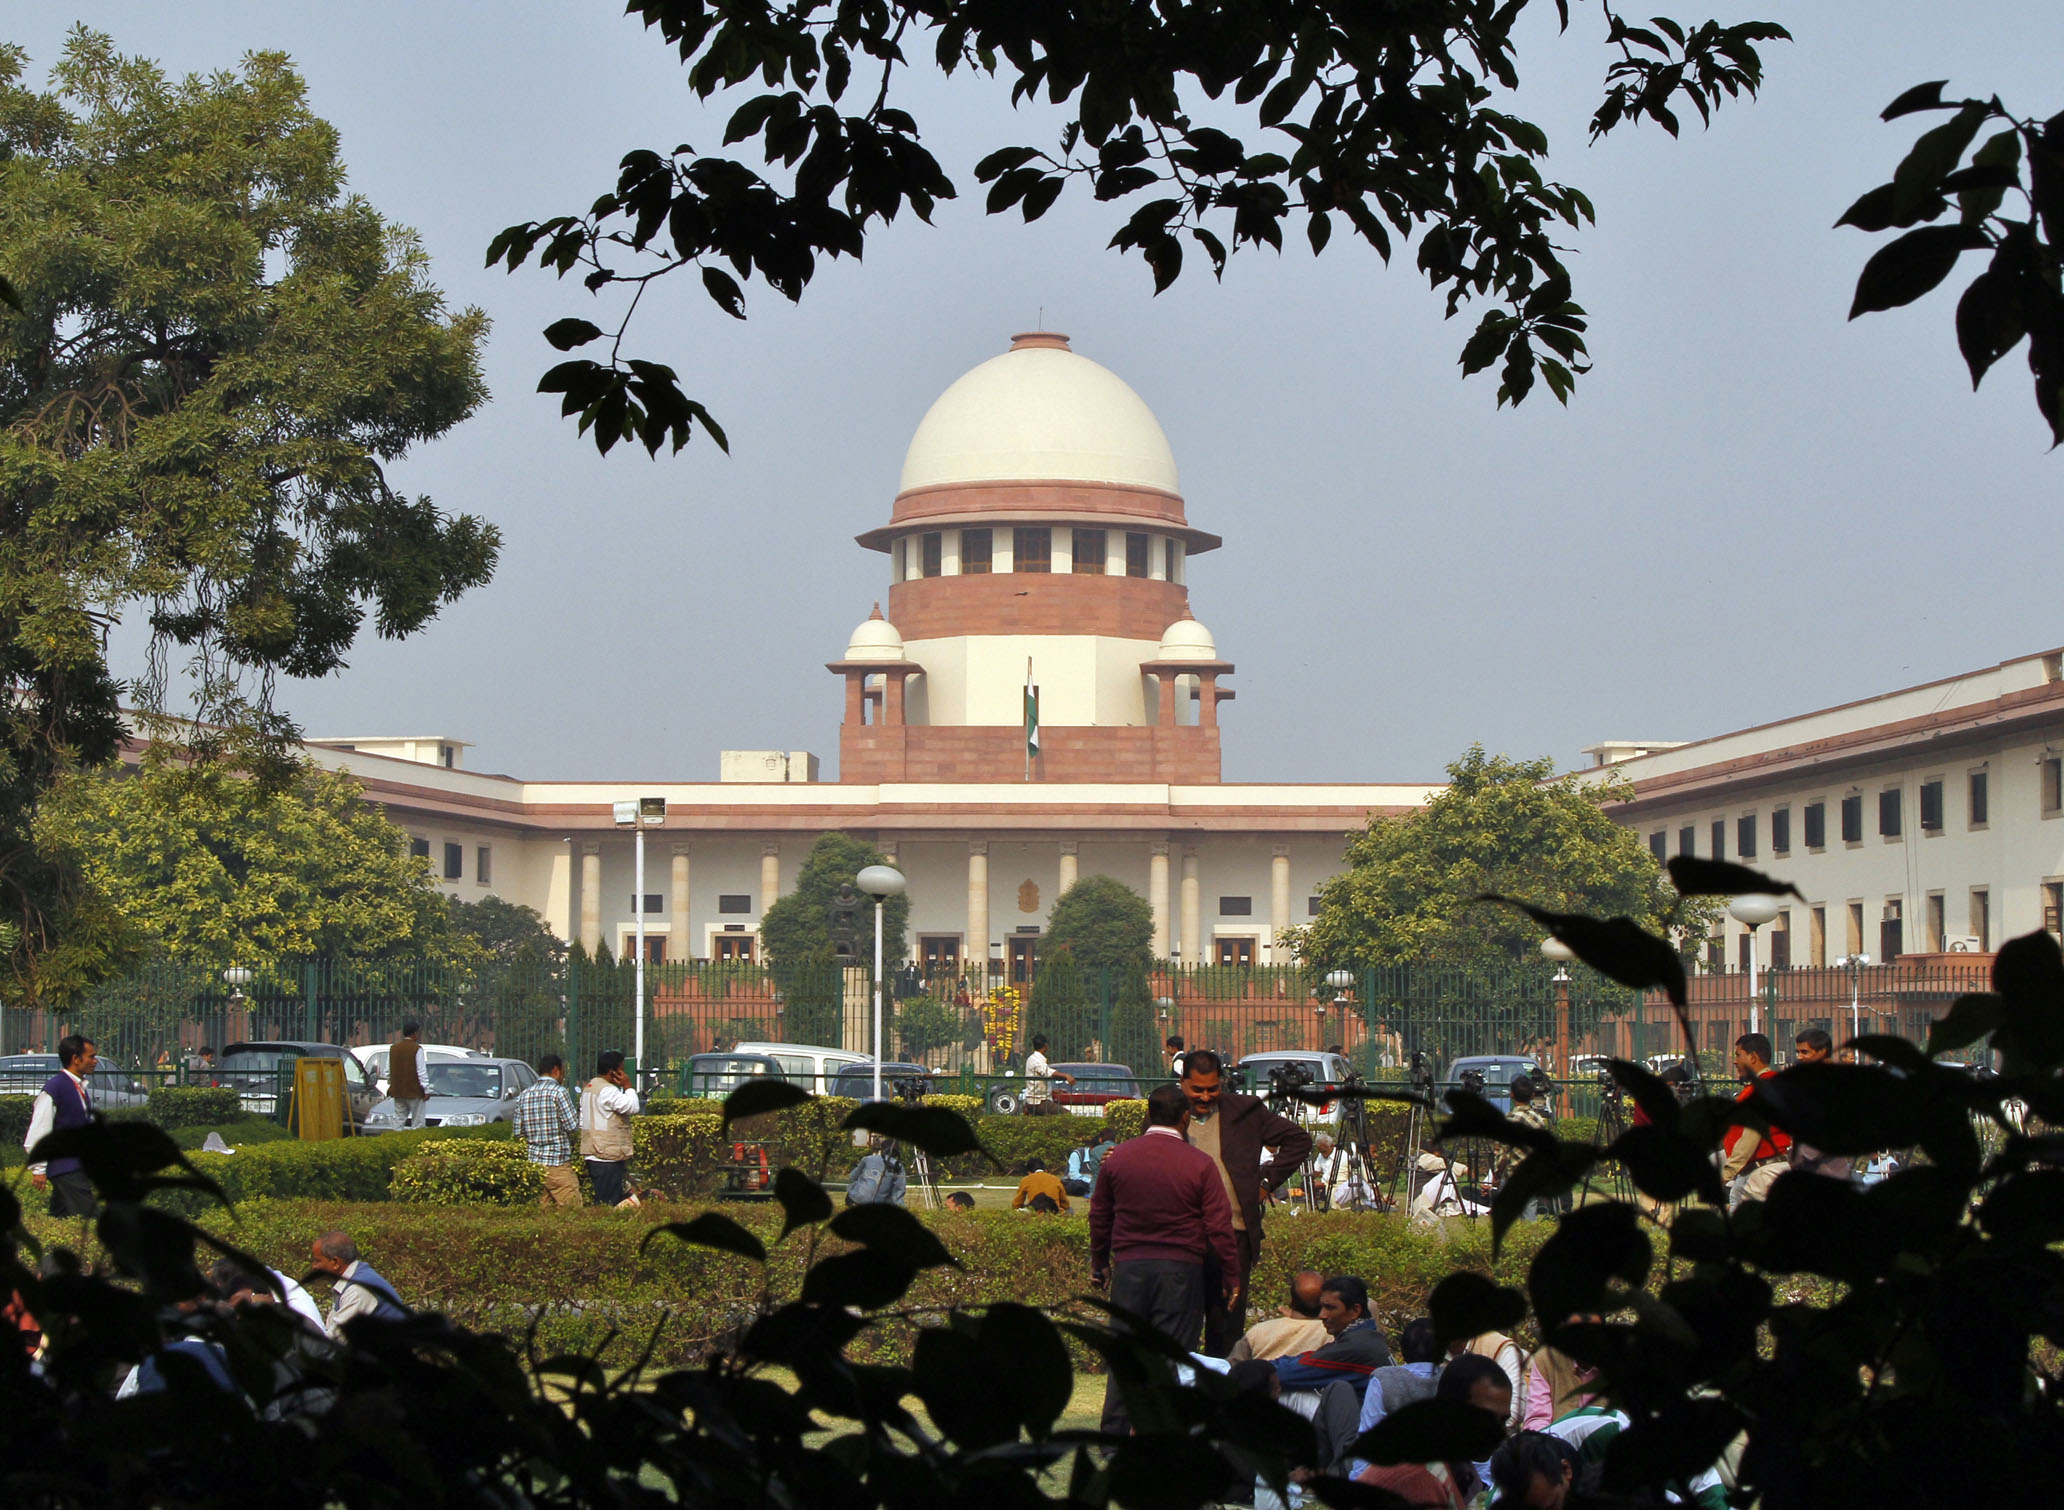 Outside view of Supreme Court